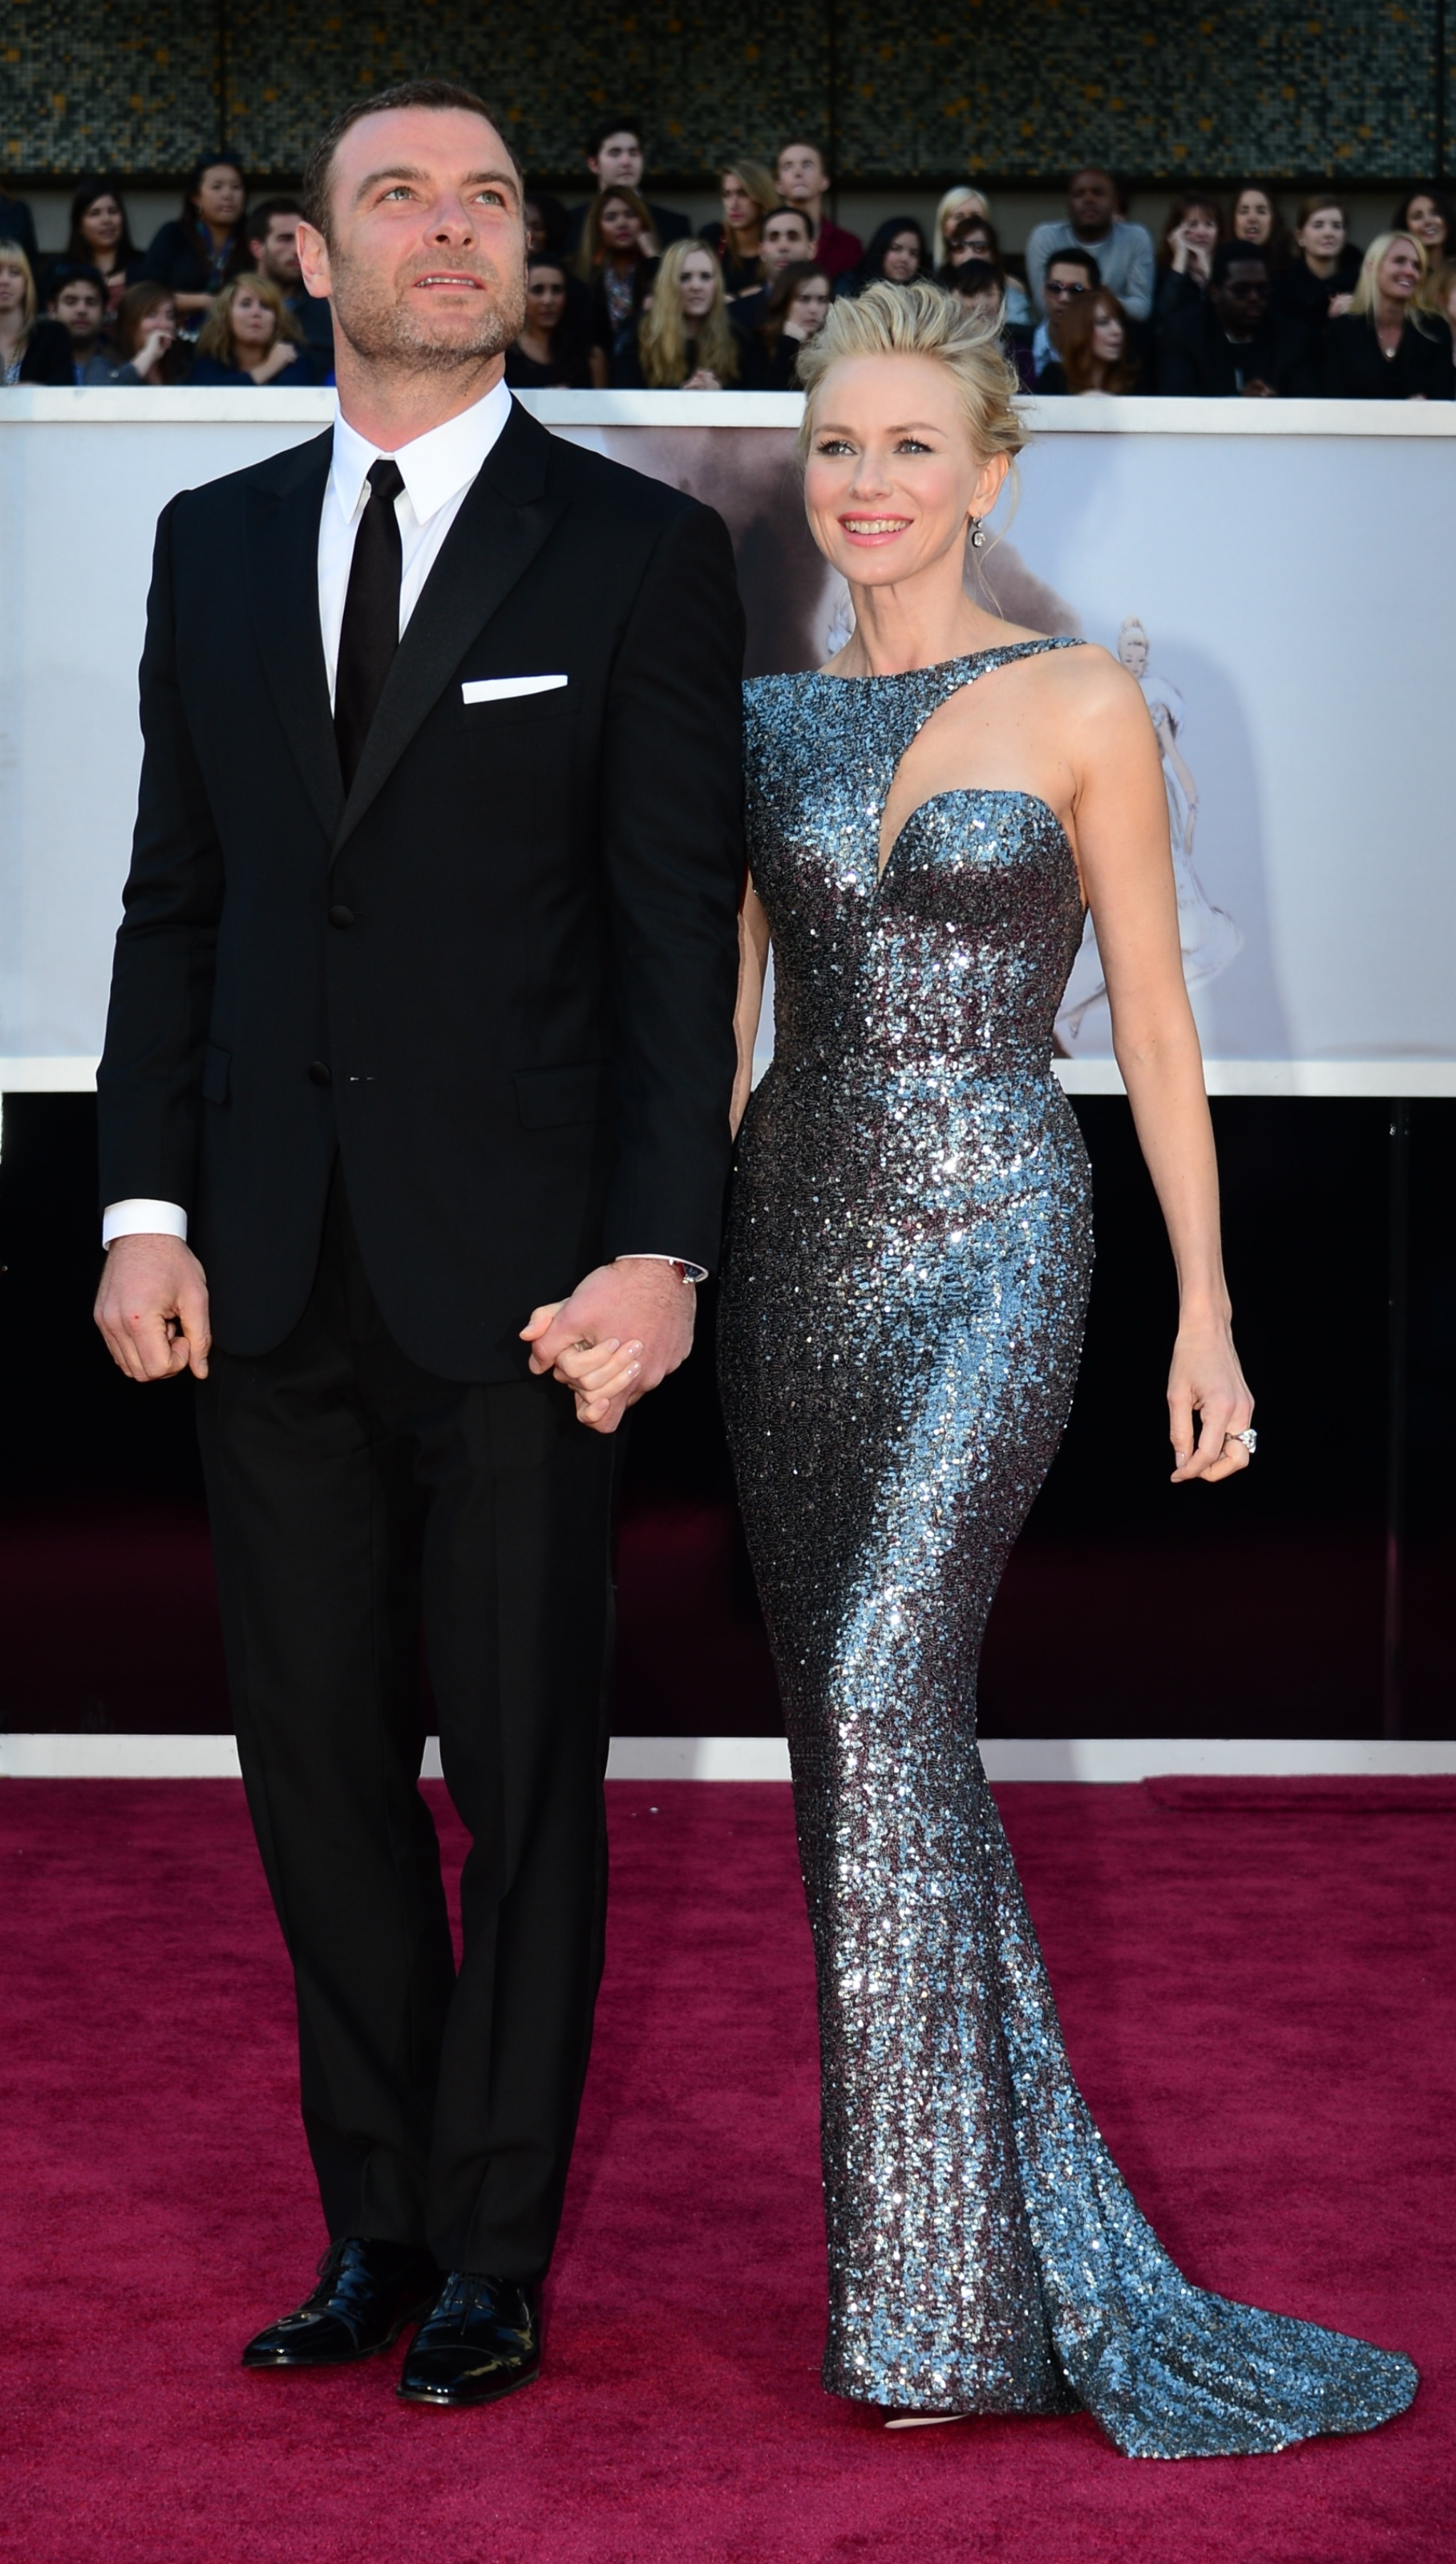 Naomi Watts and Liev Schreiber on the red carpet at the Oscars 2013.